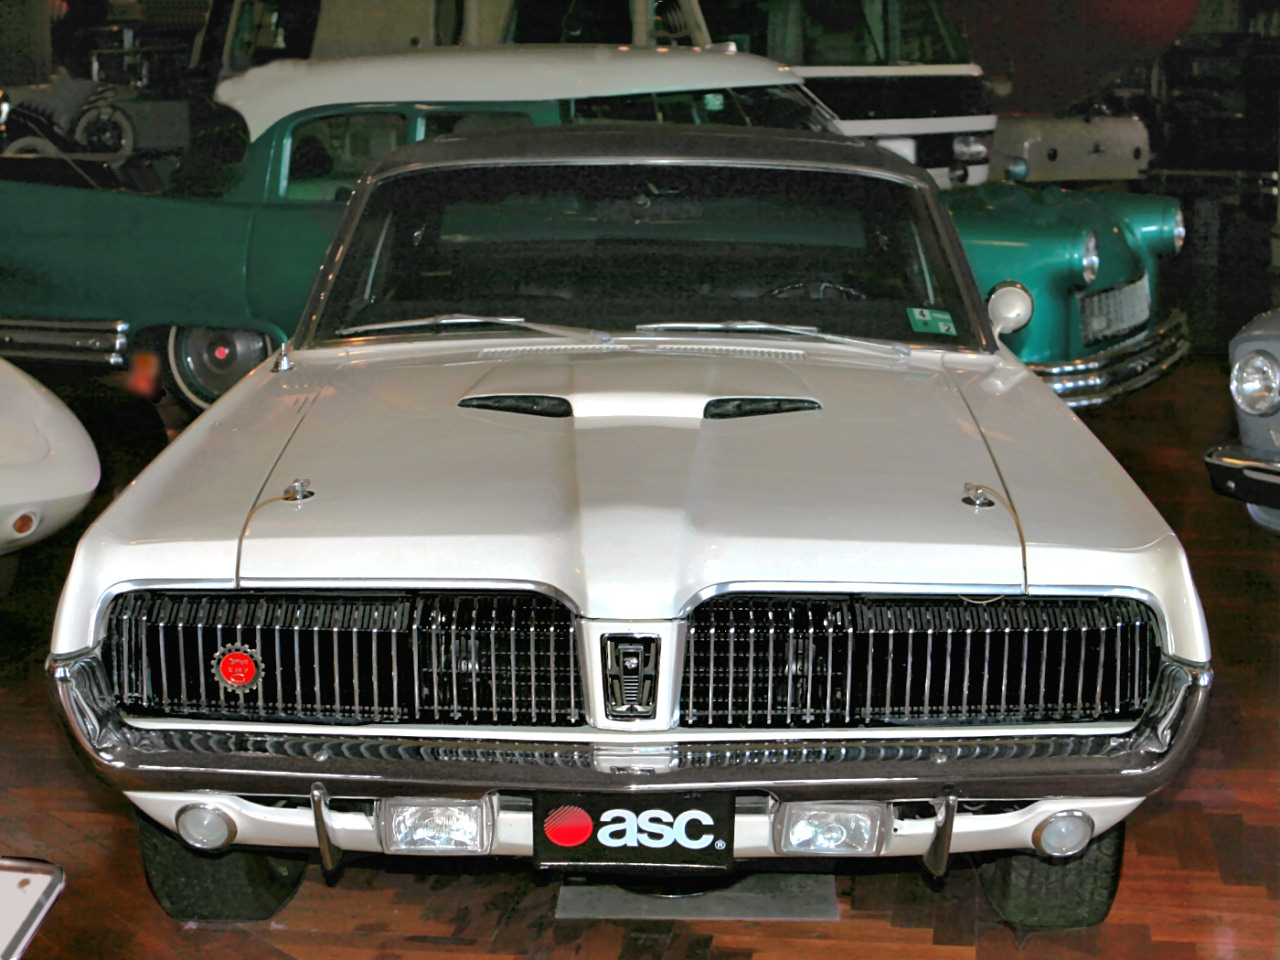 1968 Mercury Cougar 390 With Power Sunroof From ASC American Sunroof Company White Fv H Ford Museum CL